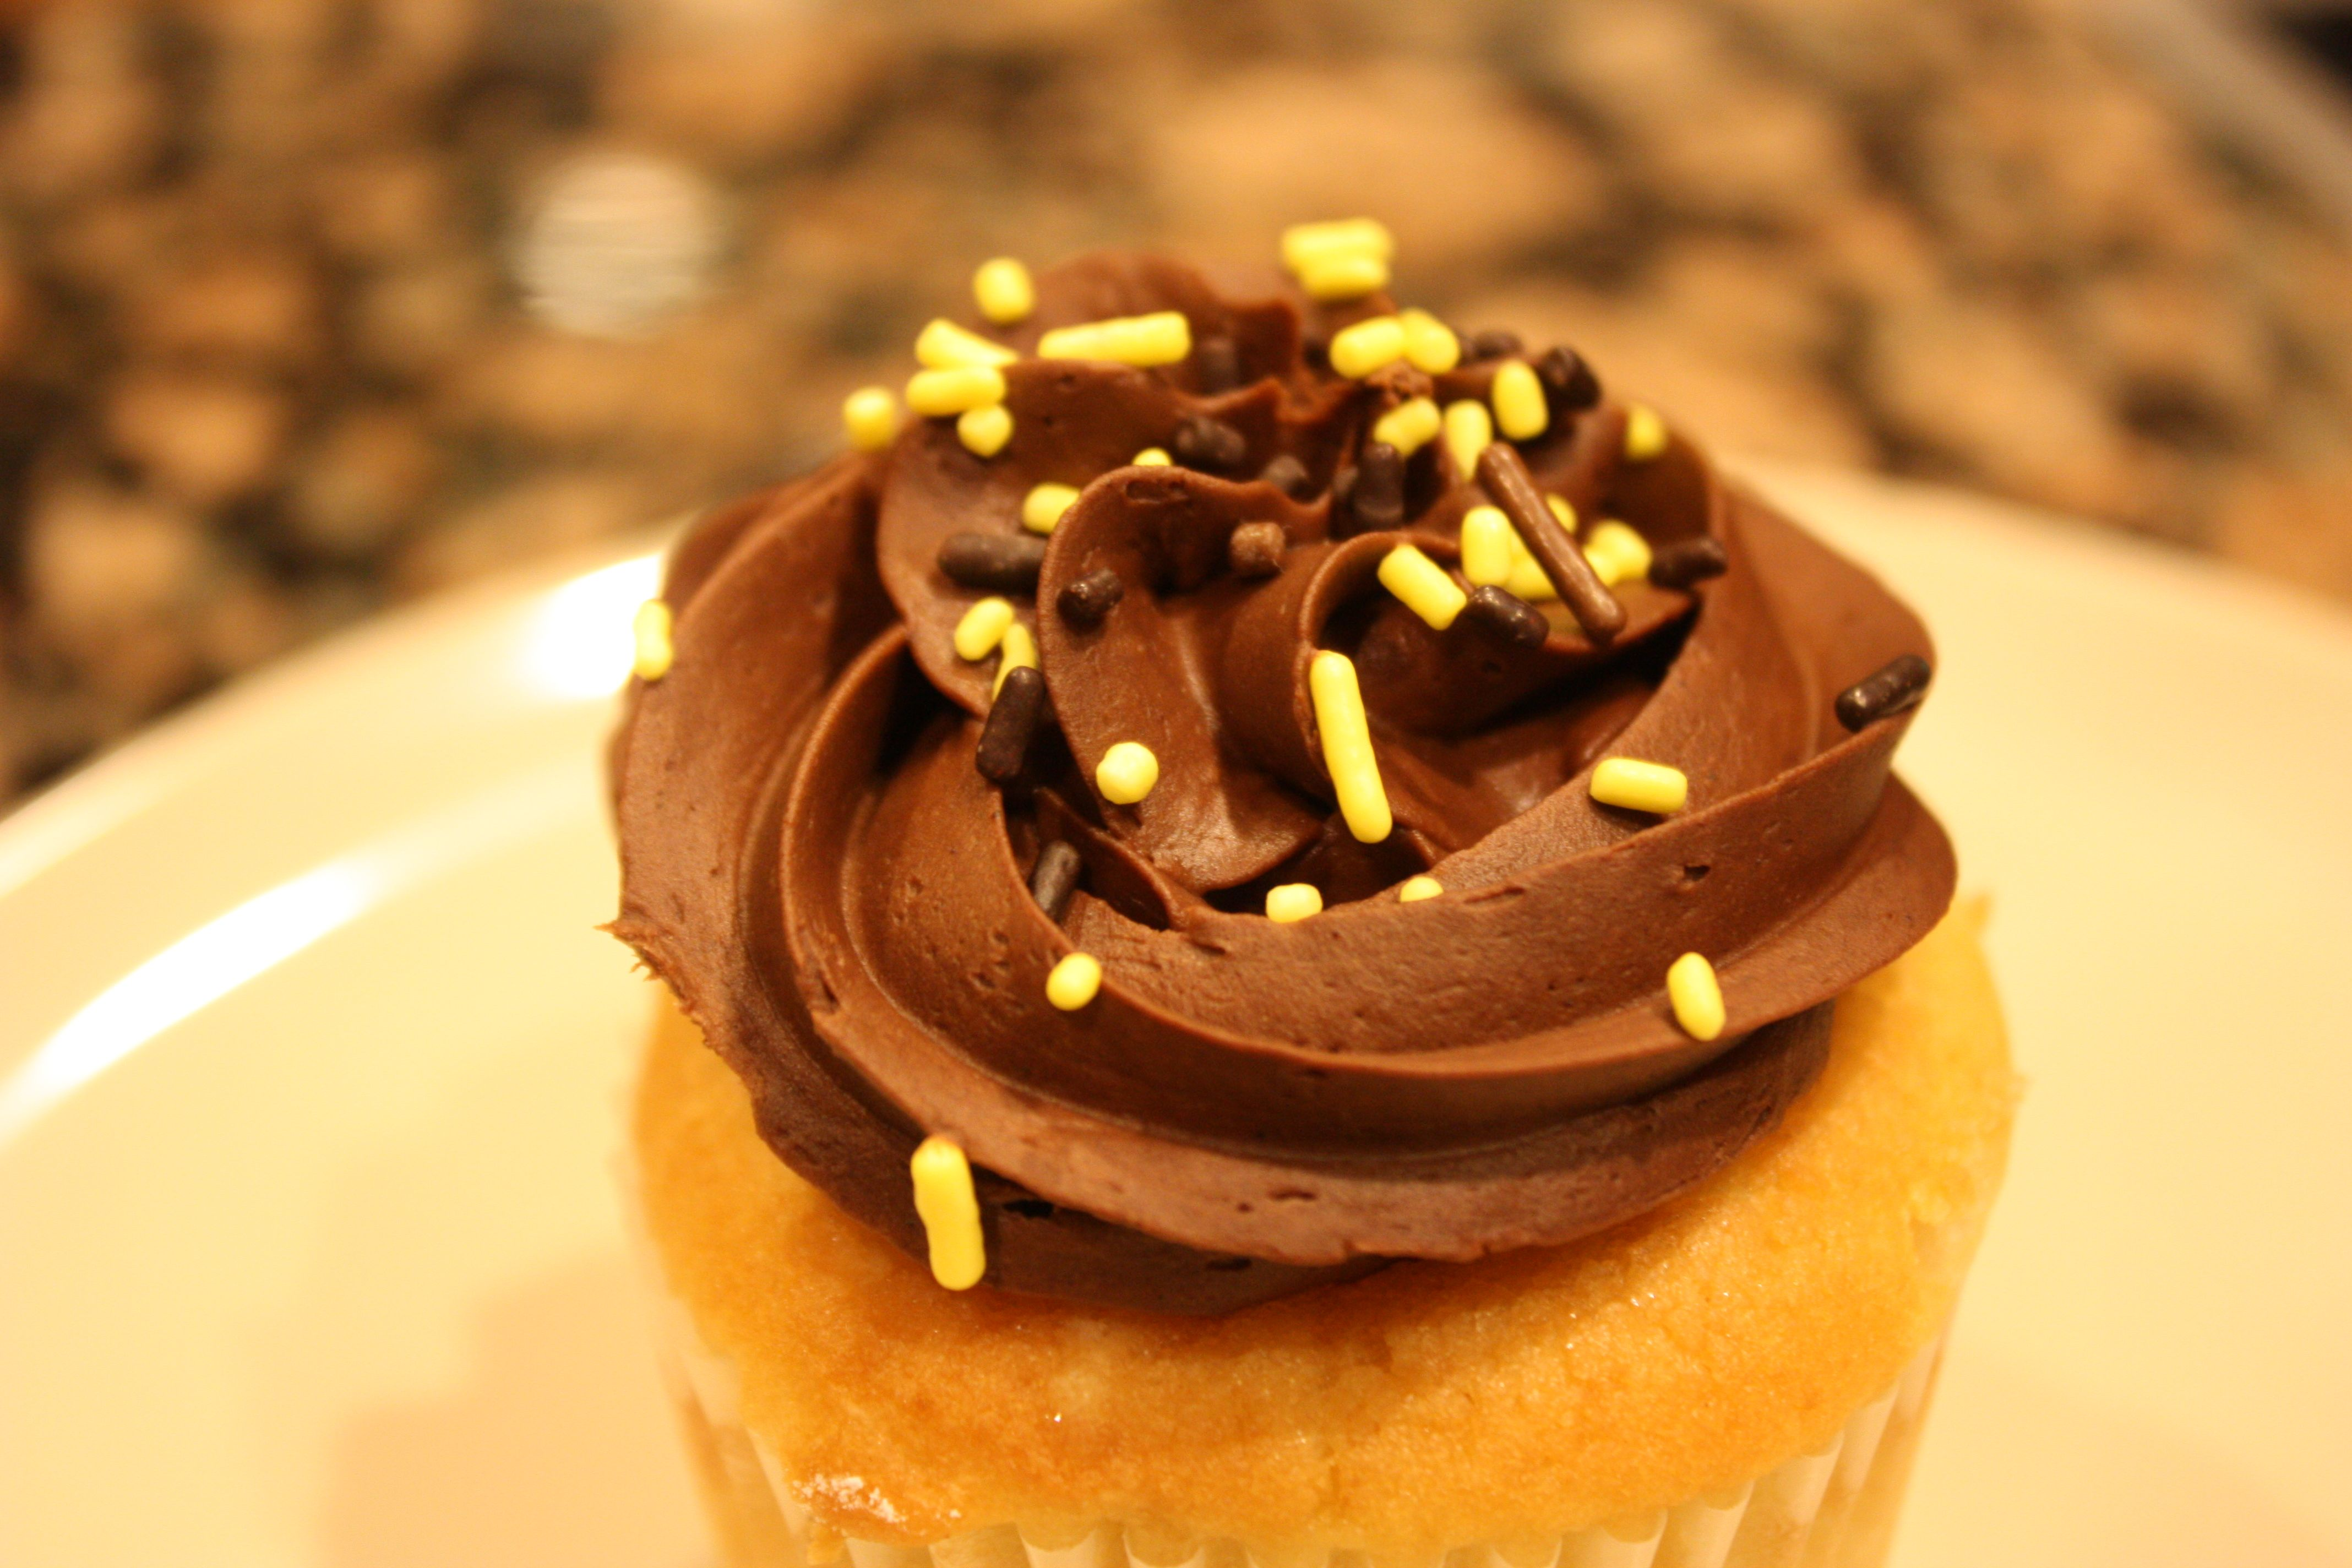 Cake Break Yellow Cupcake with Chocolate Frosting